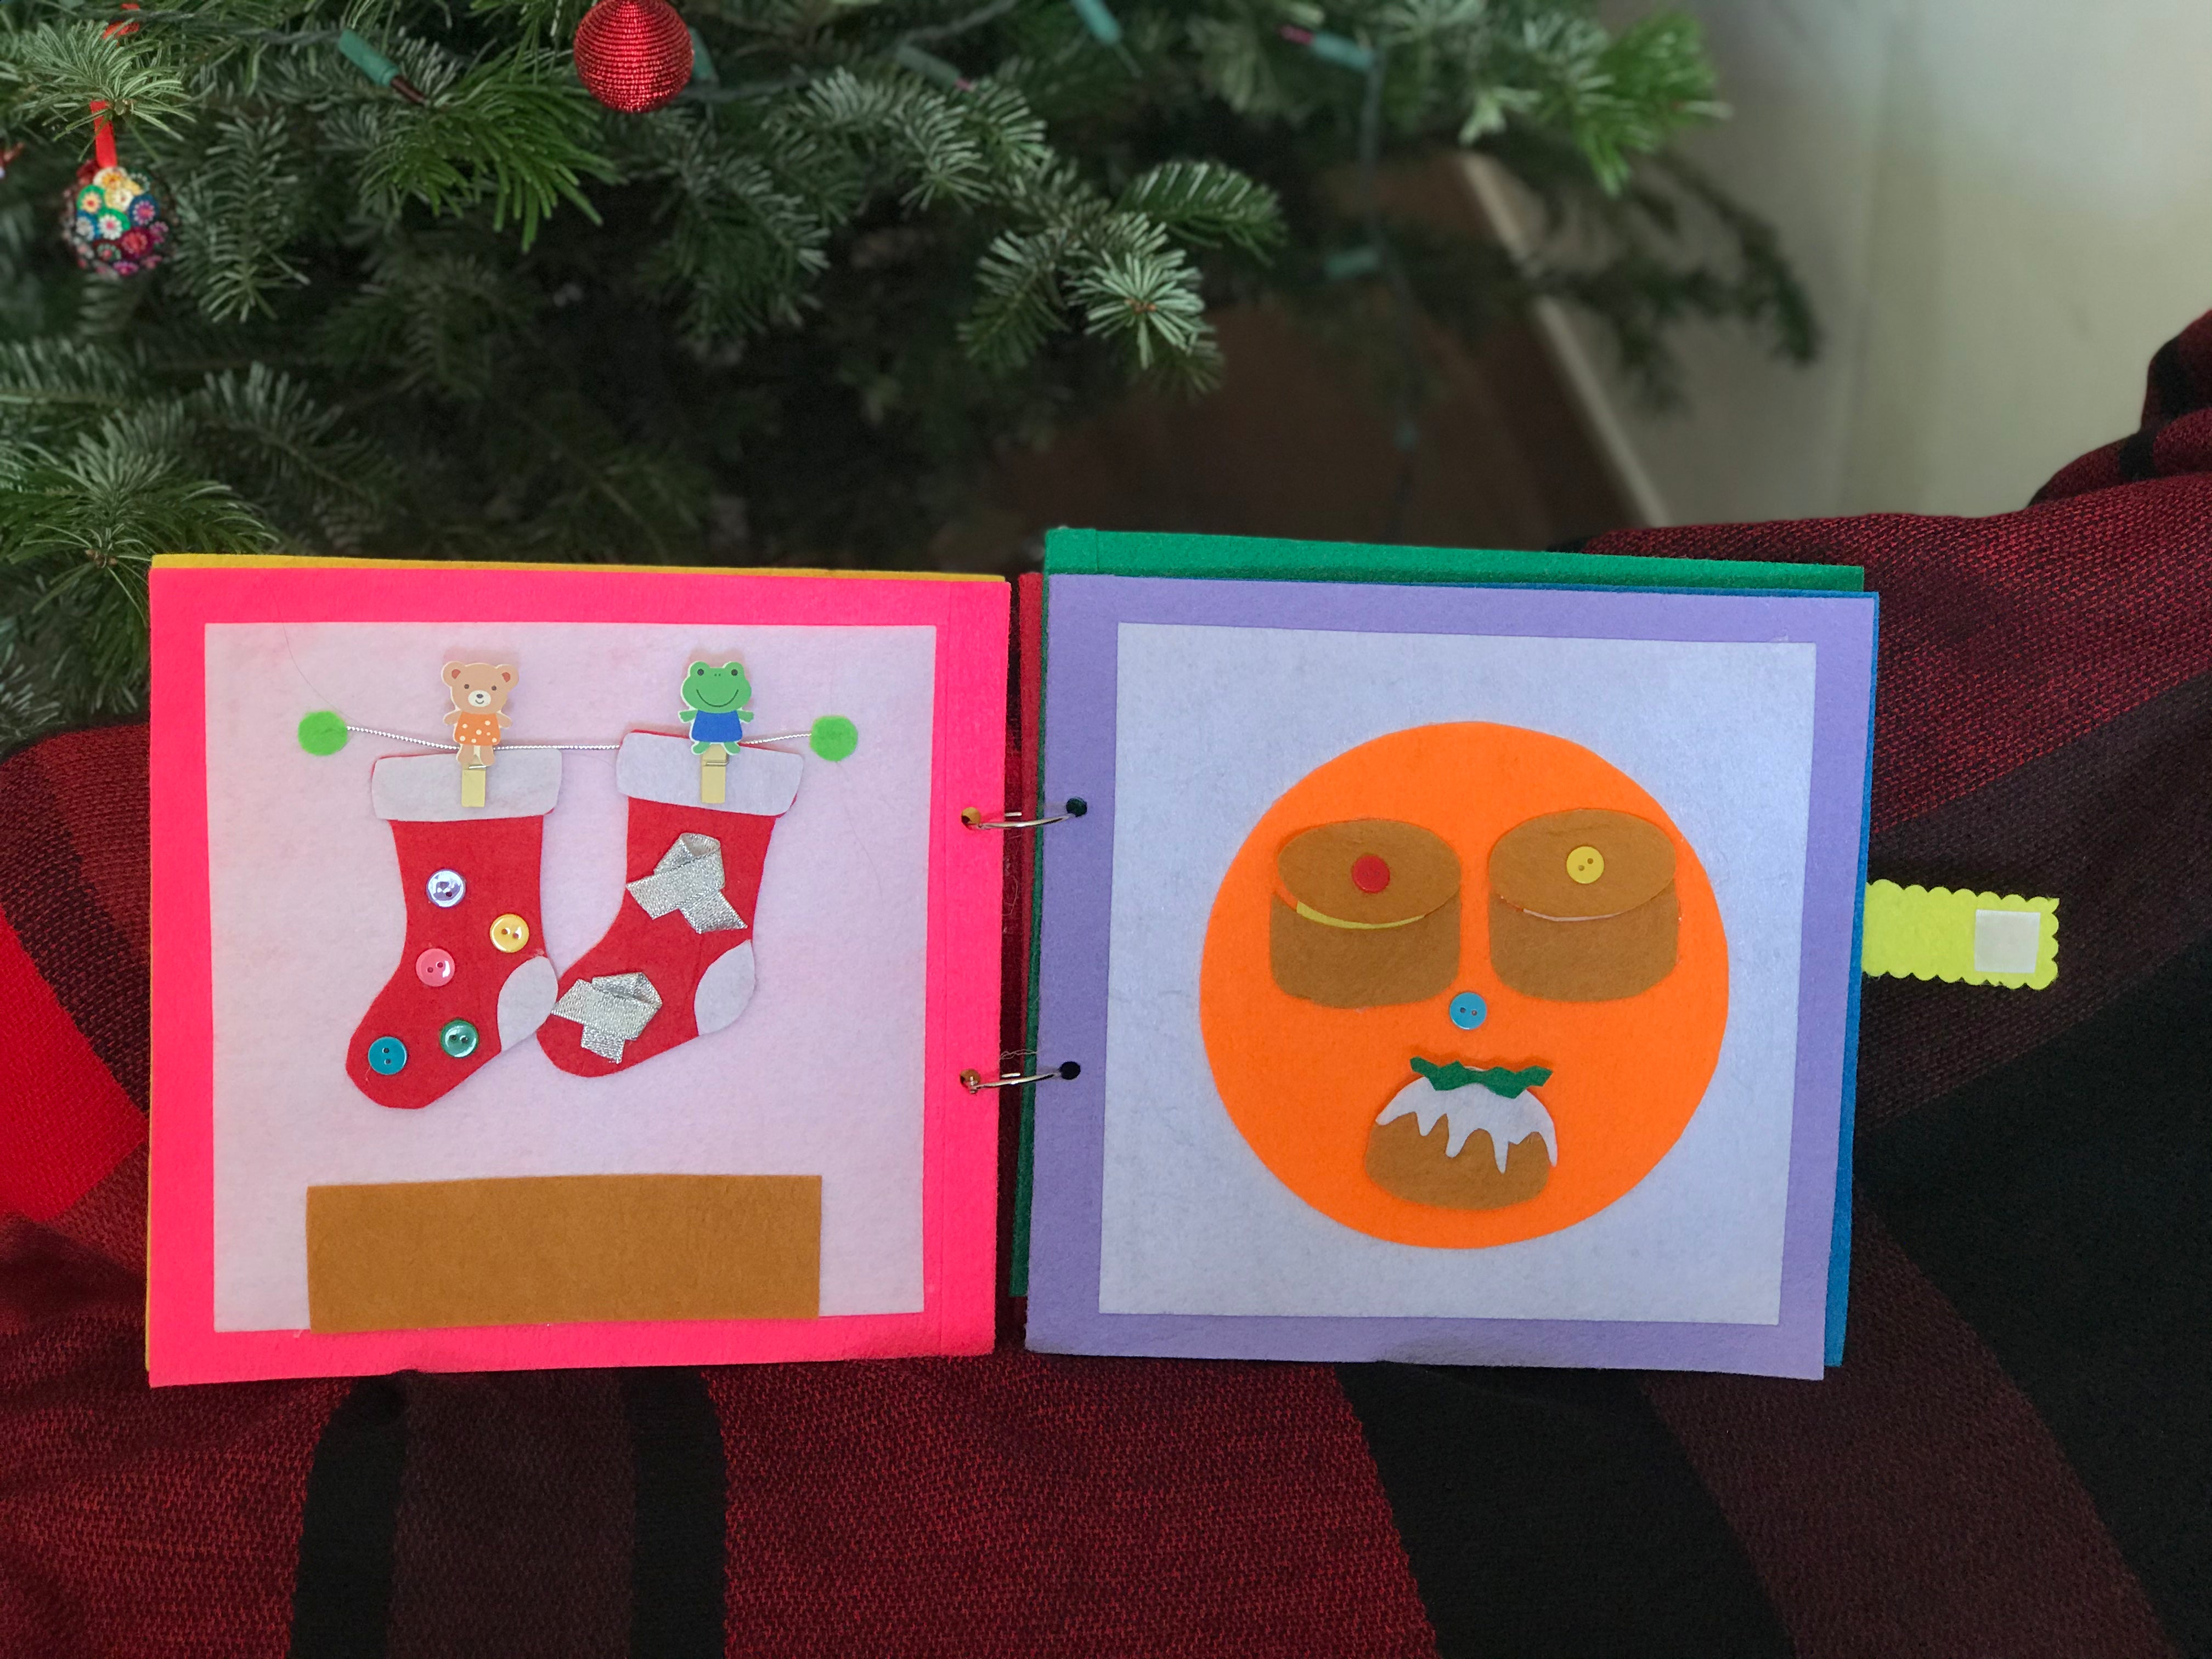 DIY KIT: Making a Christmas playbook - Quiet Book